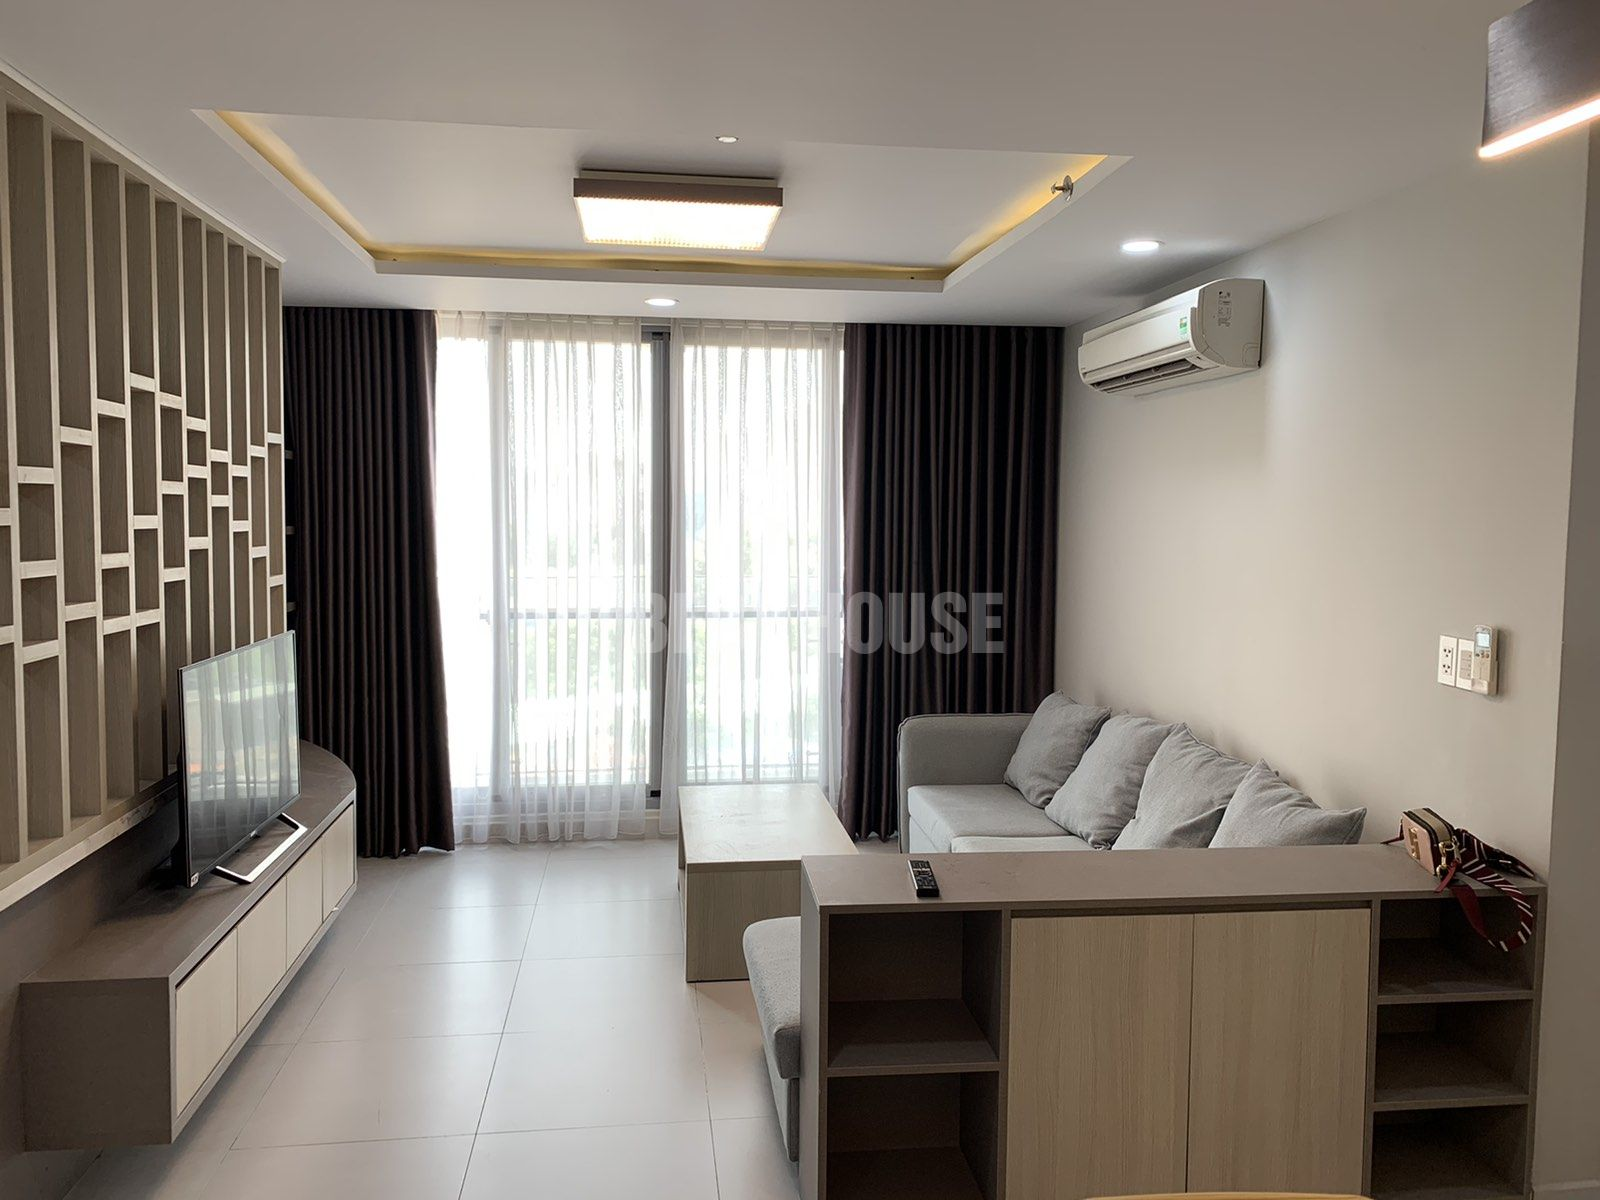 green-valley-apartment-for-rent-in-phu-my-hung-district-7-hcmc-5